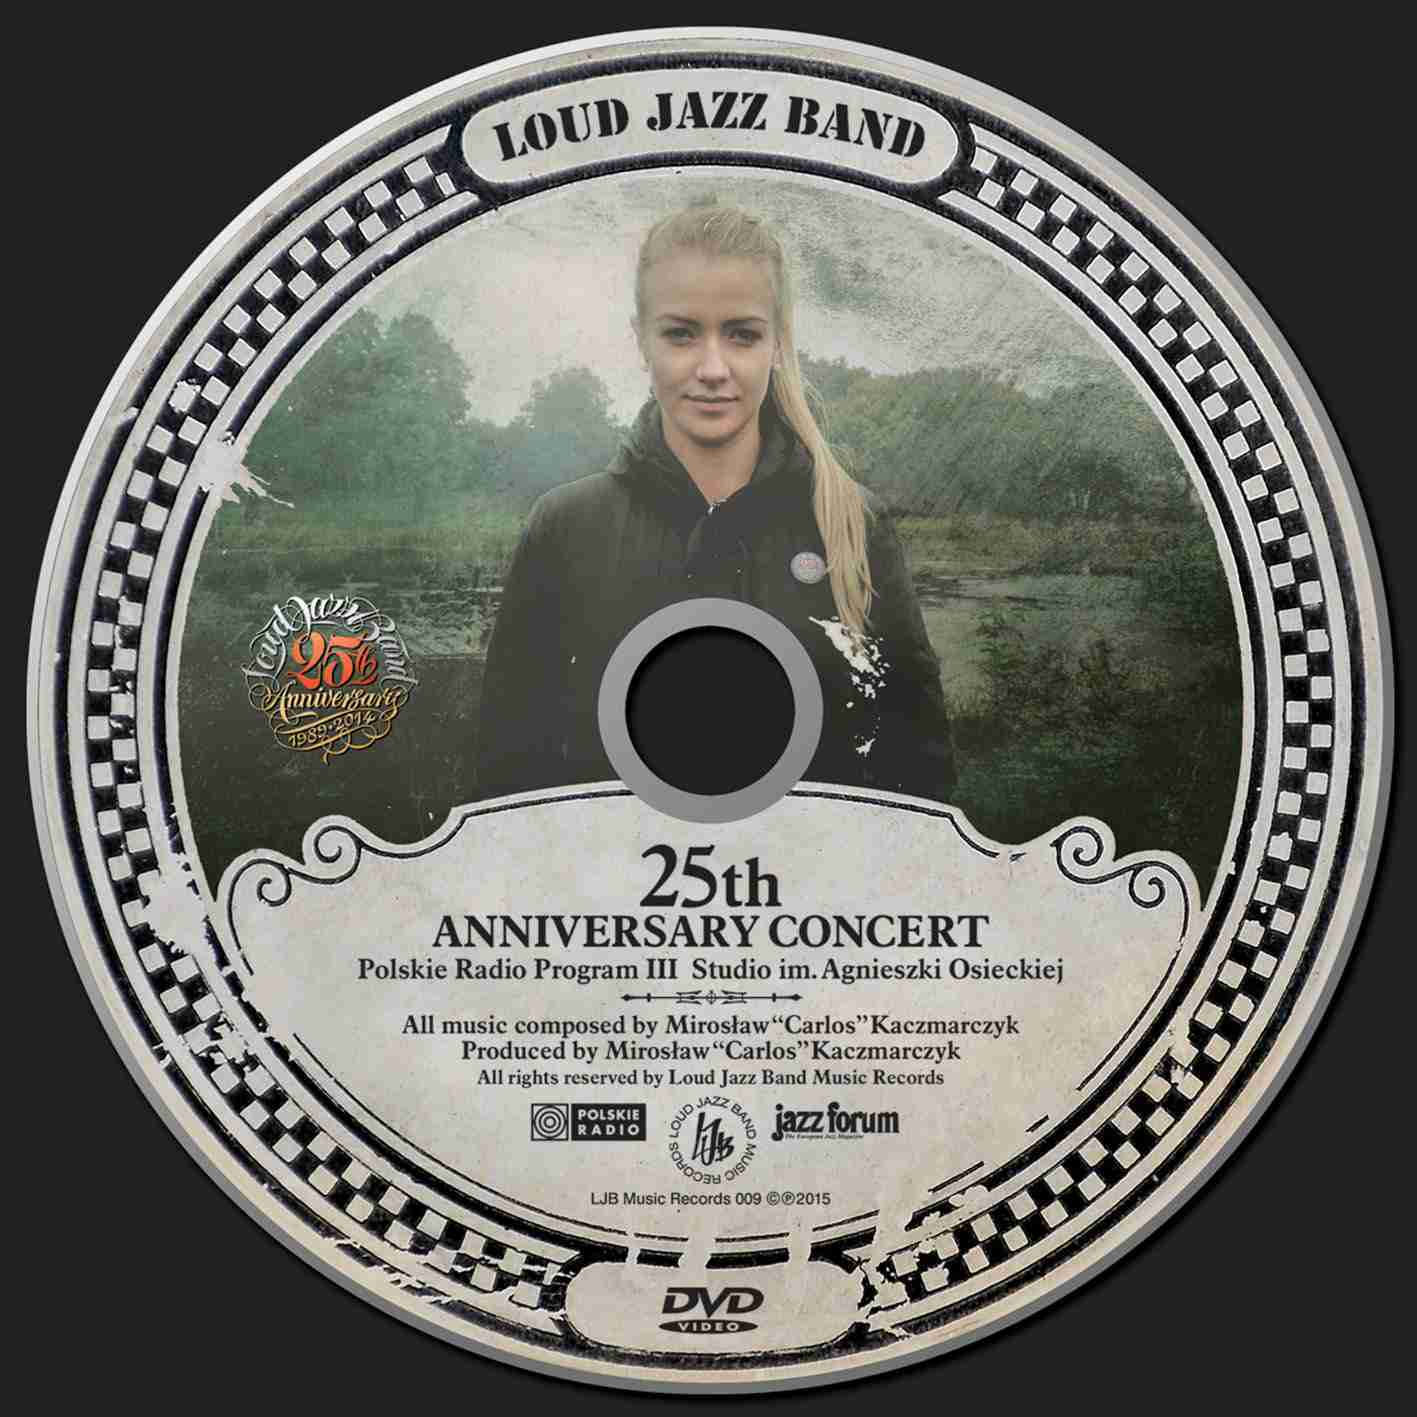 25th Anniversary Concert - disc project